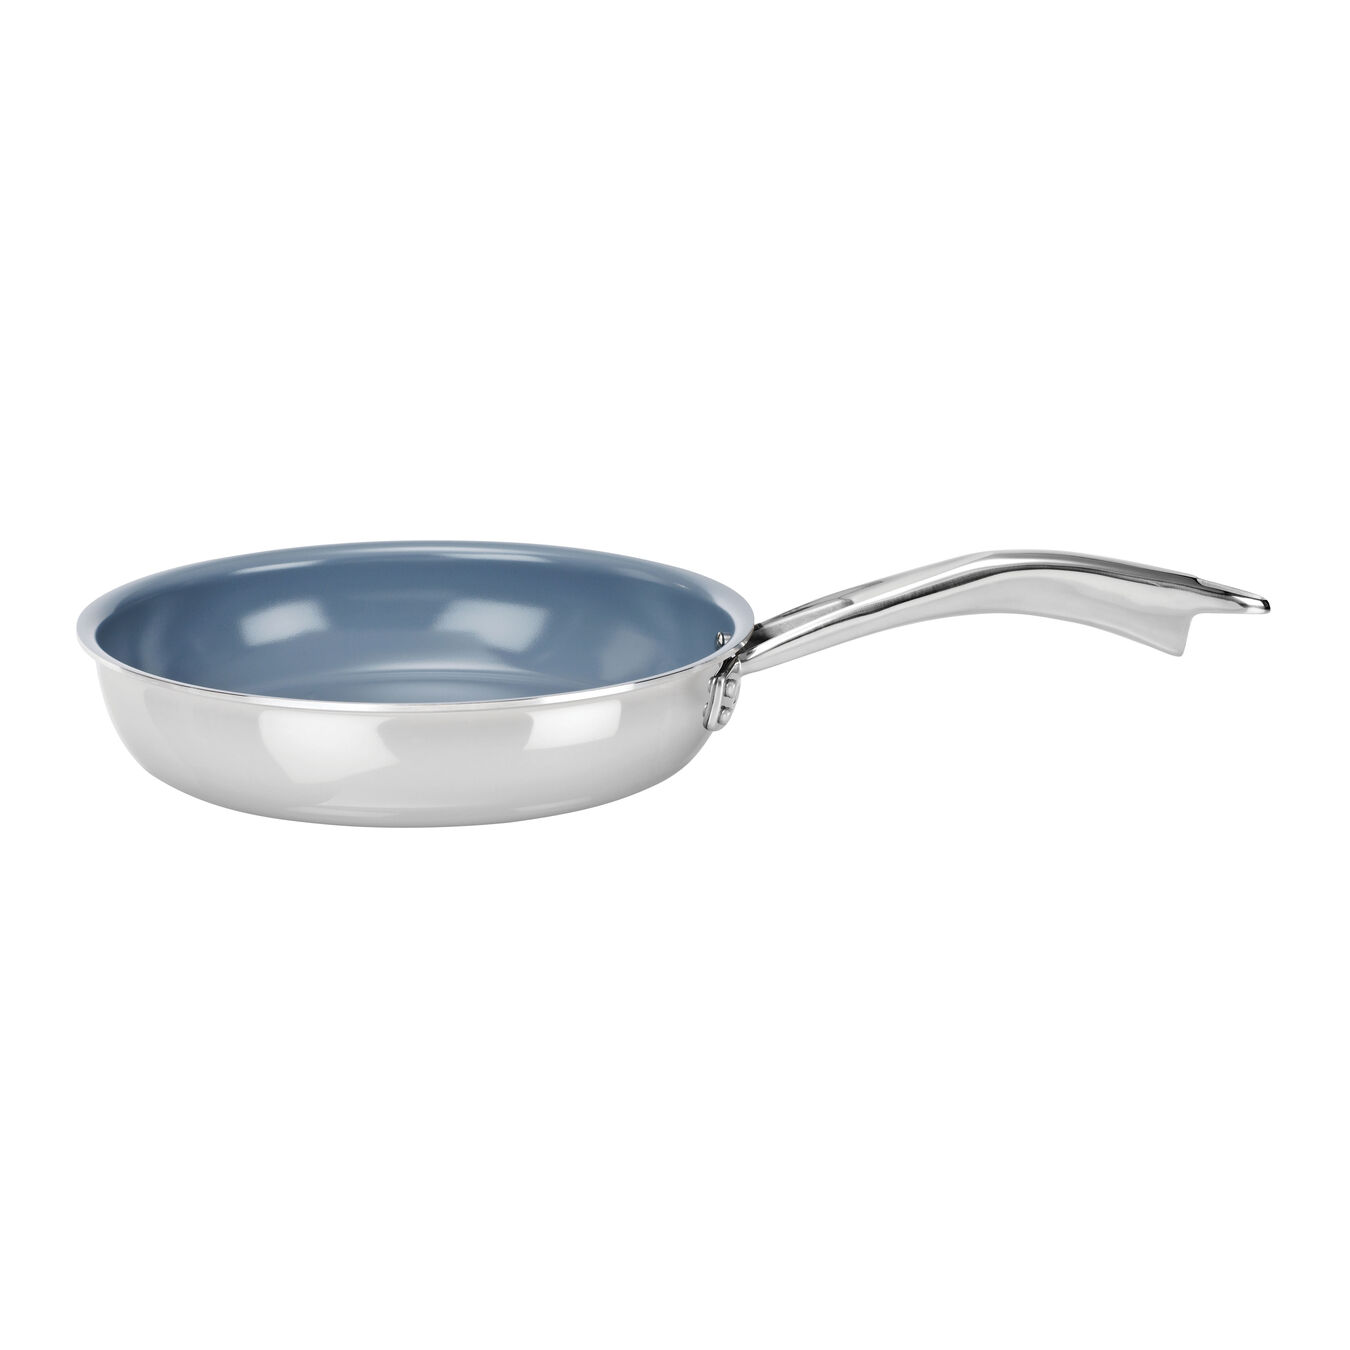 20 cm / 8 inch 18/10 Stainless Steel ceramic non-stick frying pan,,large 1